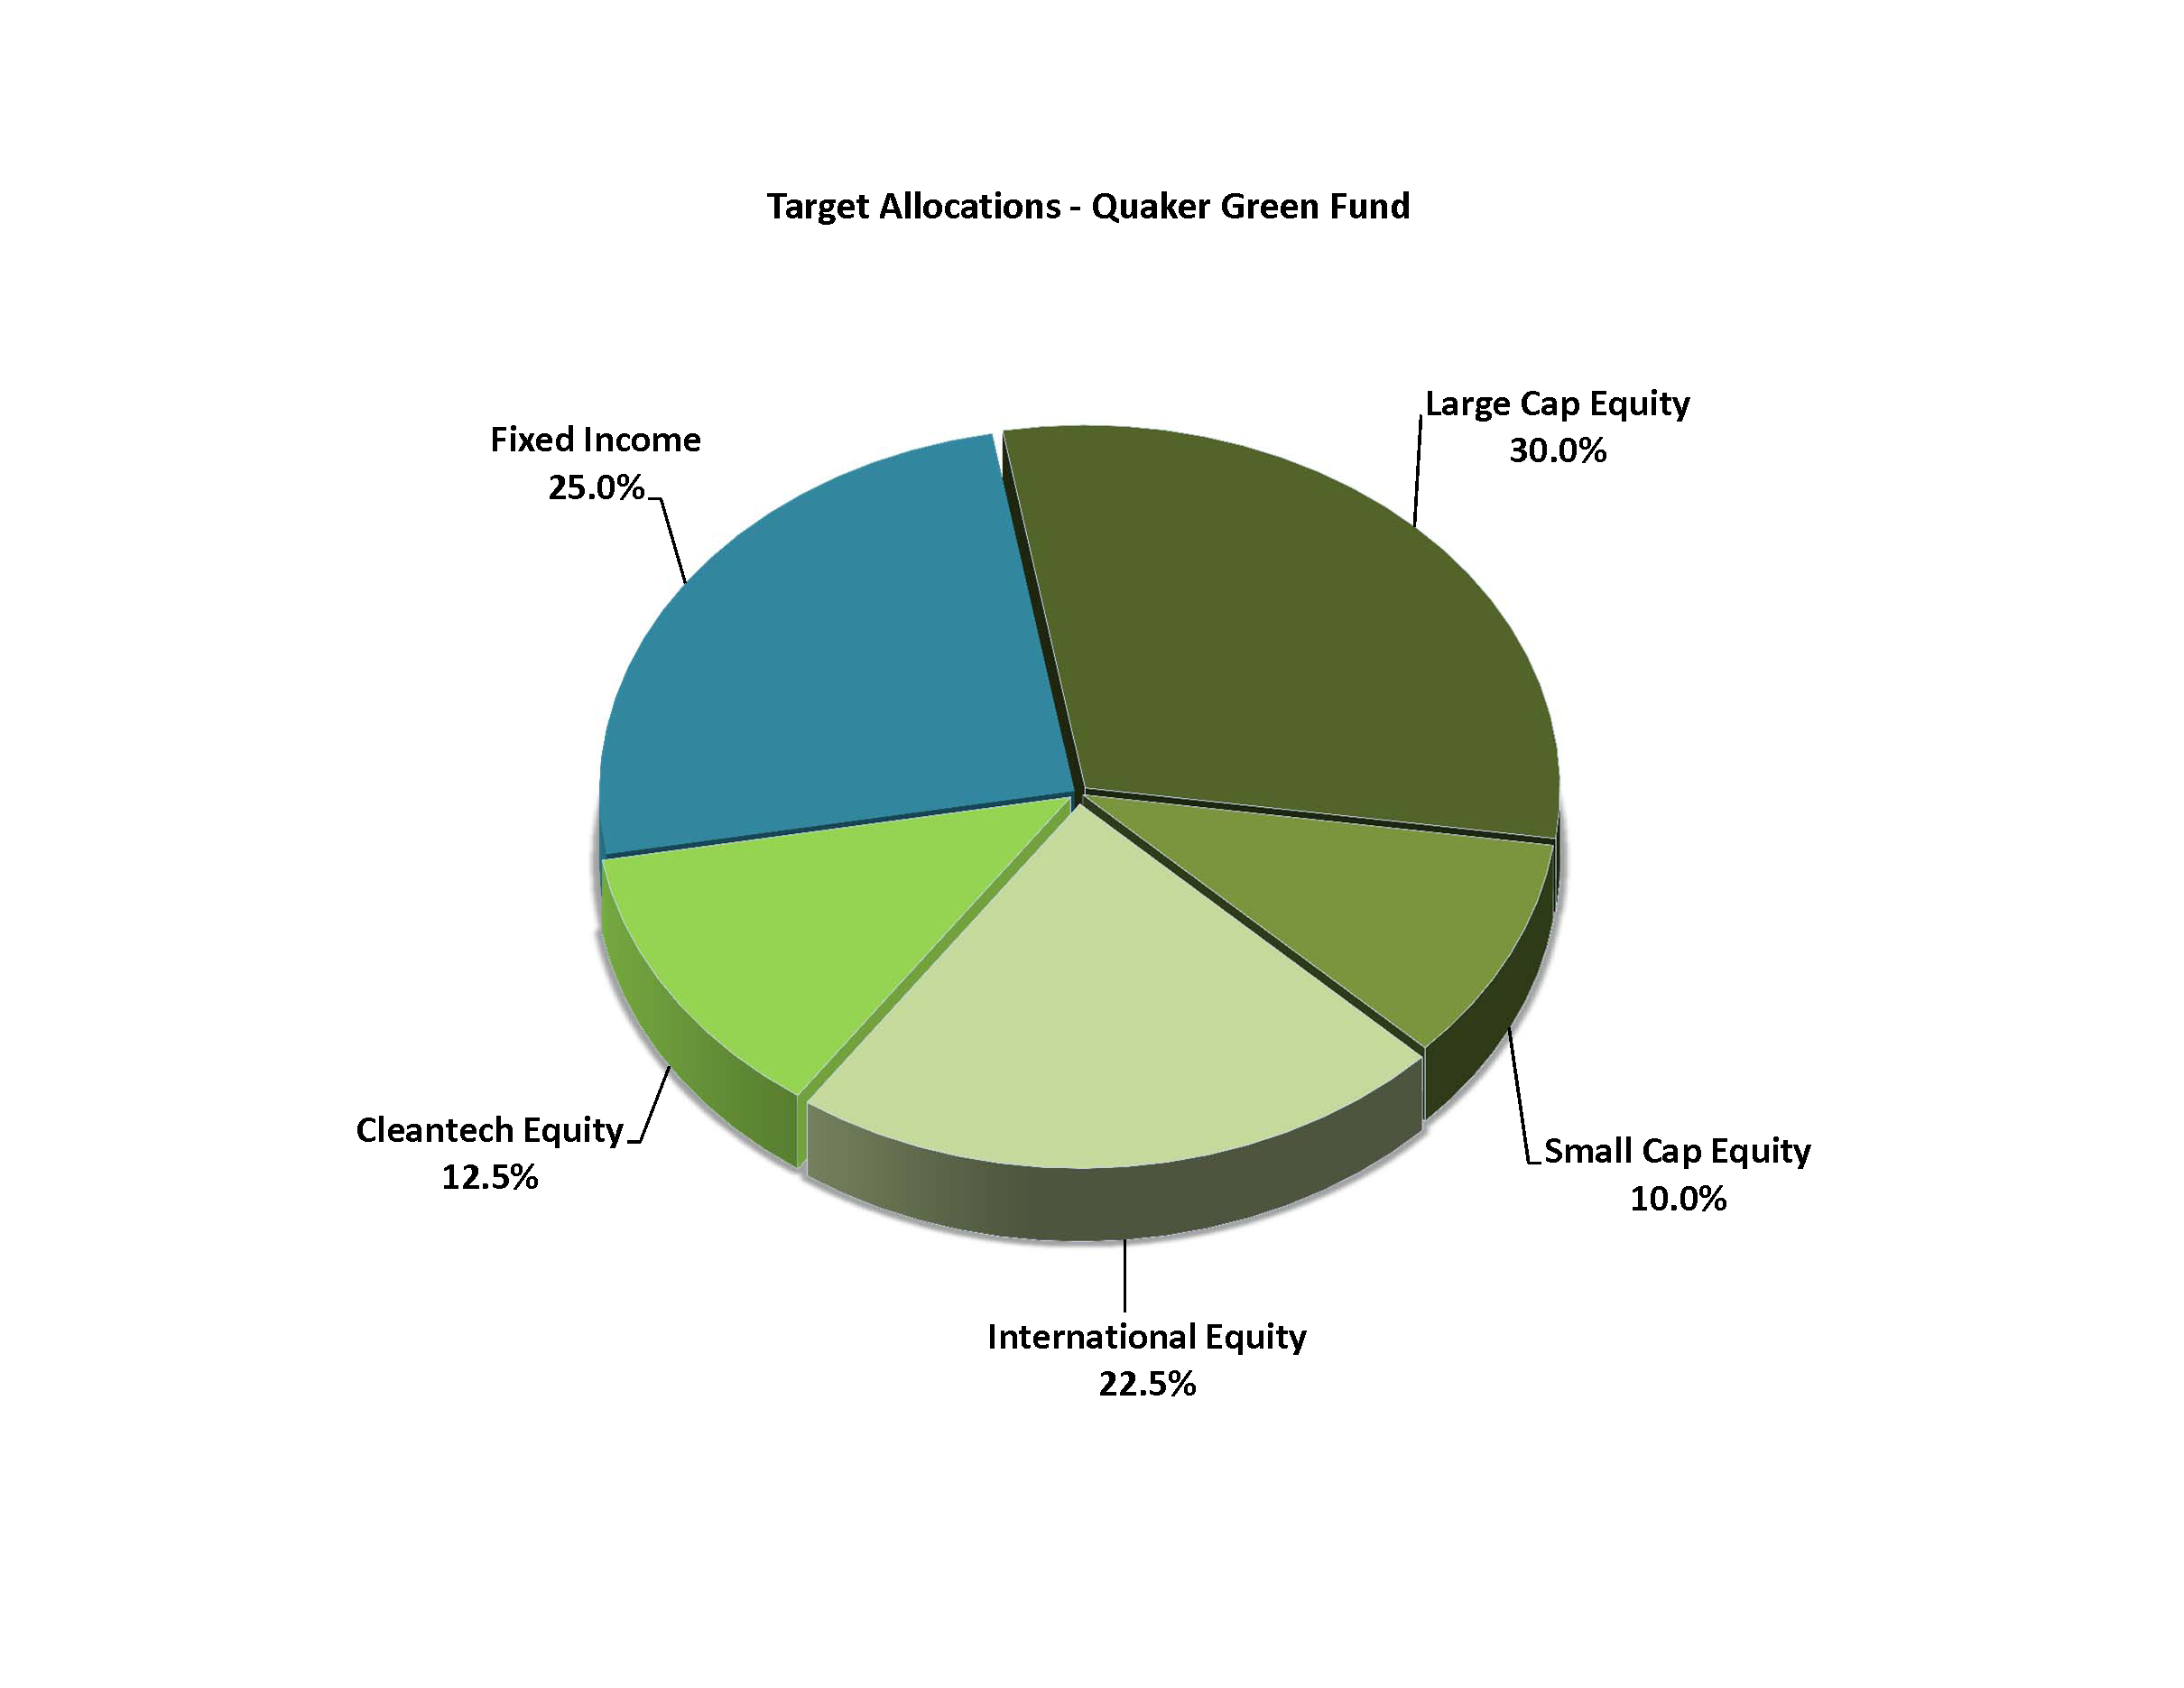 QGF Target Allocations Pie Chart